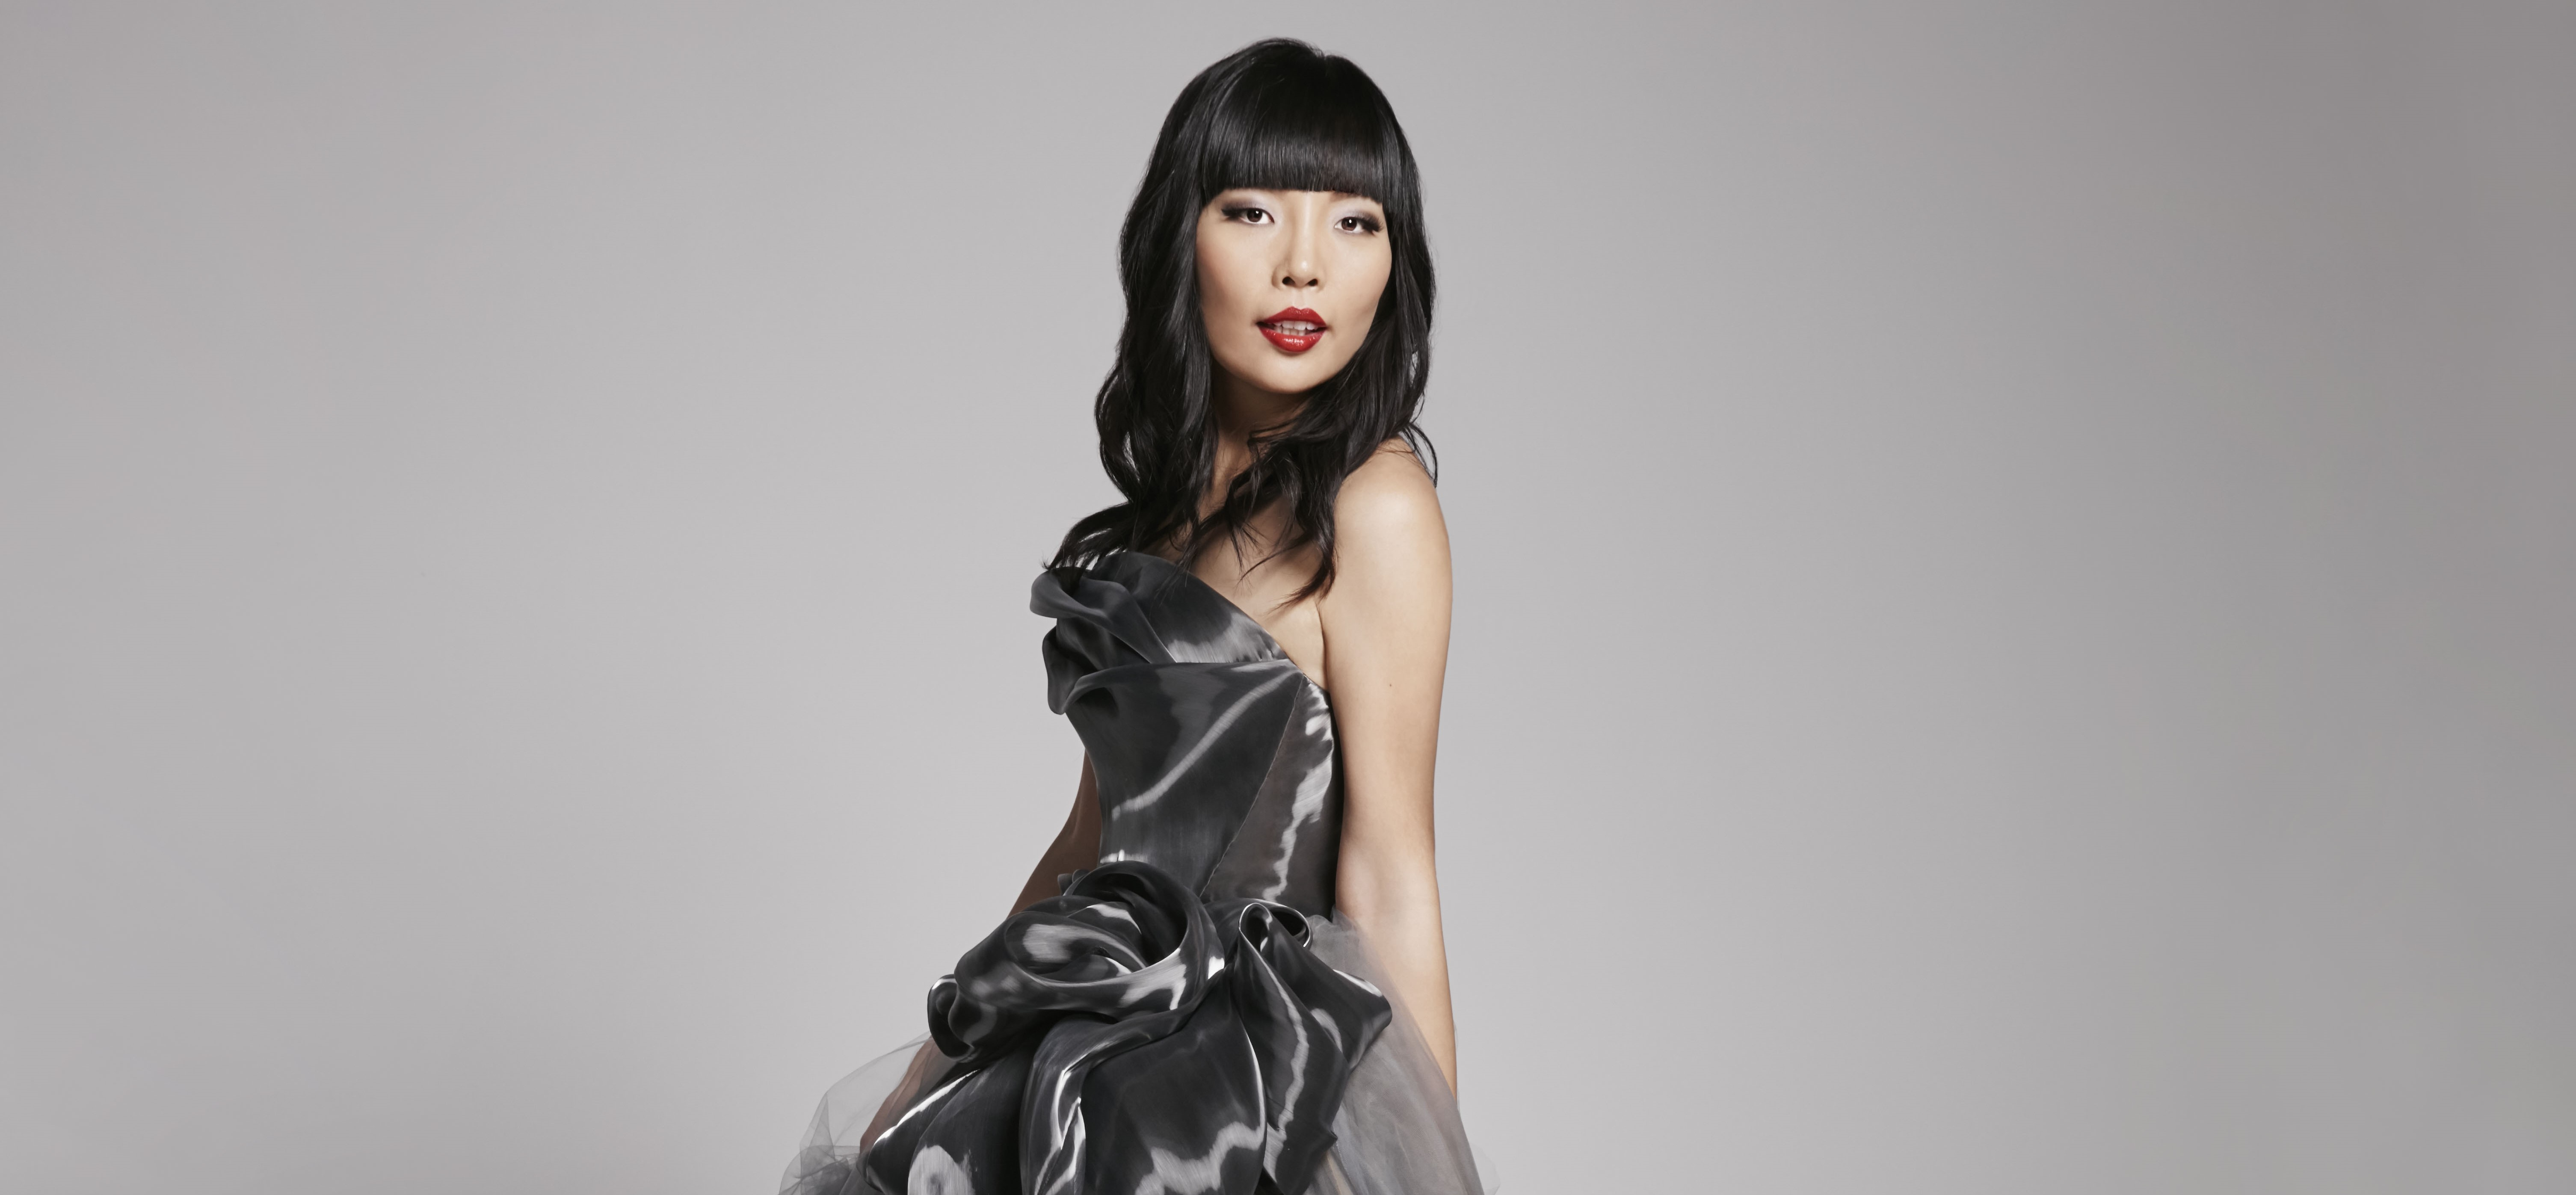 Dami Im Places Second In The Eurovision Song Contest 2016!